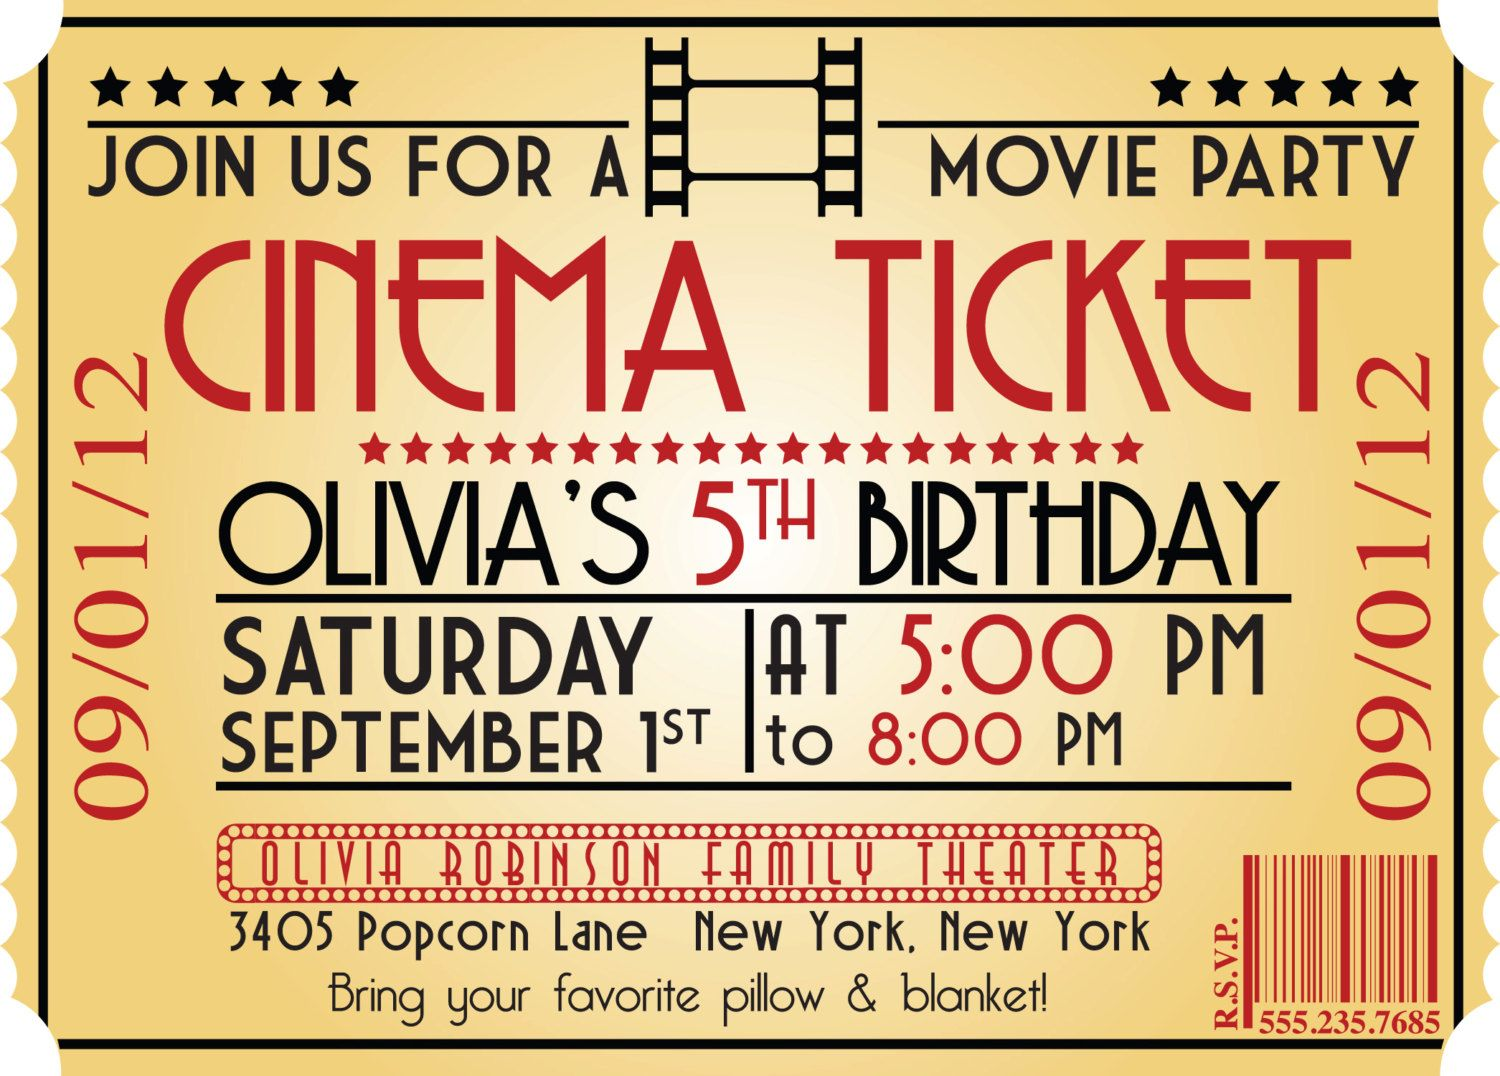 movie night ticket birthday invitations | Birthday Ideas | Pinterest ...